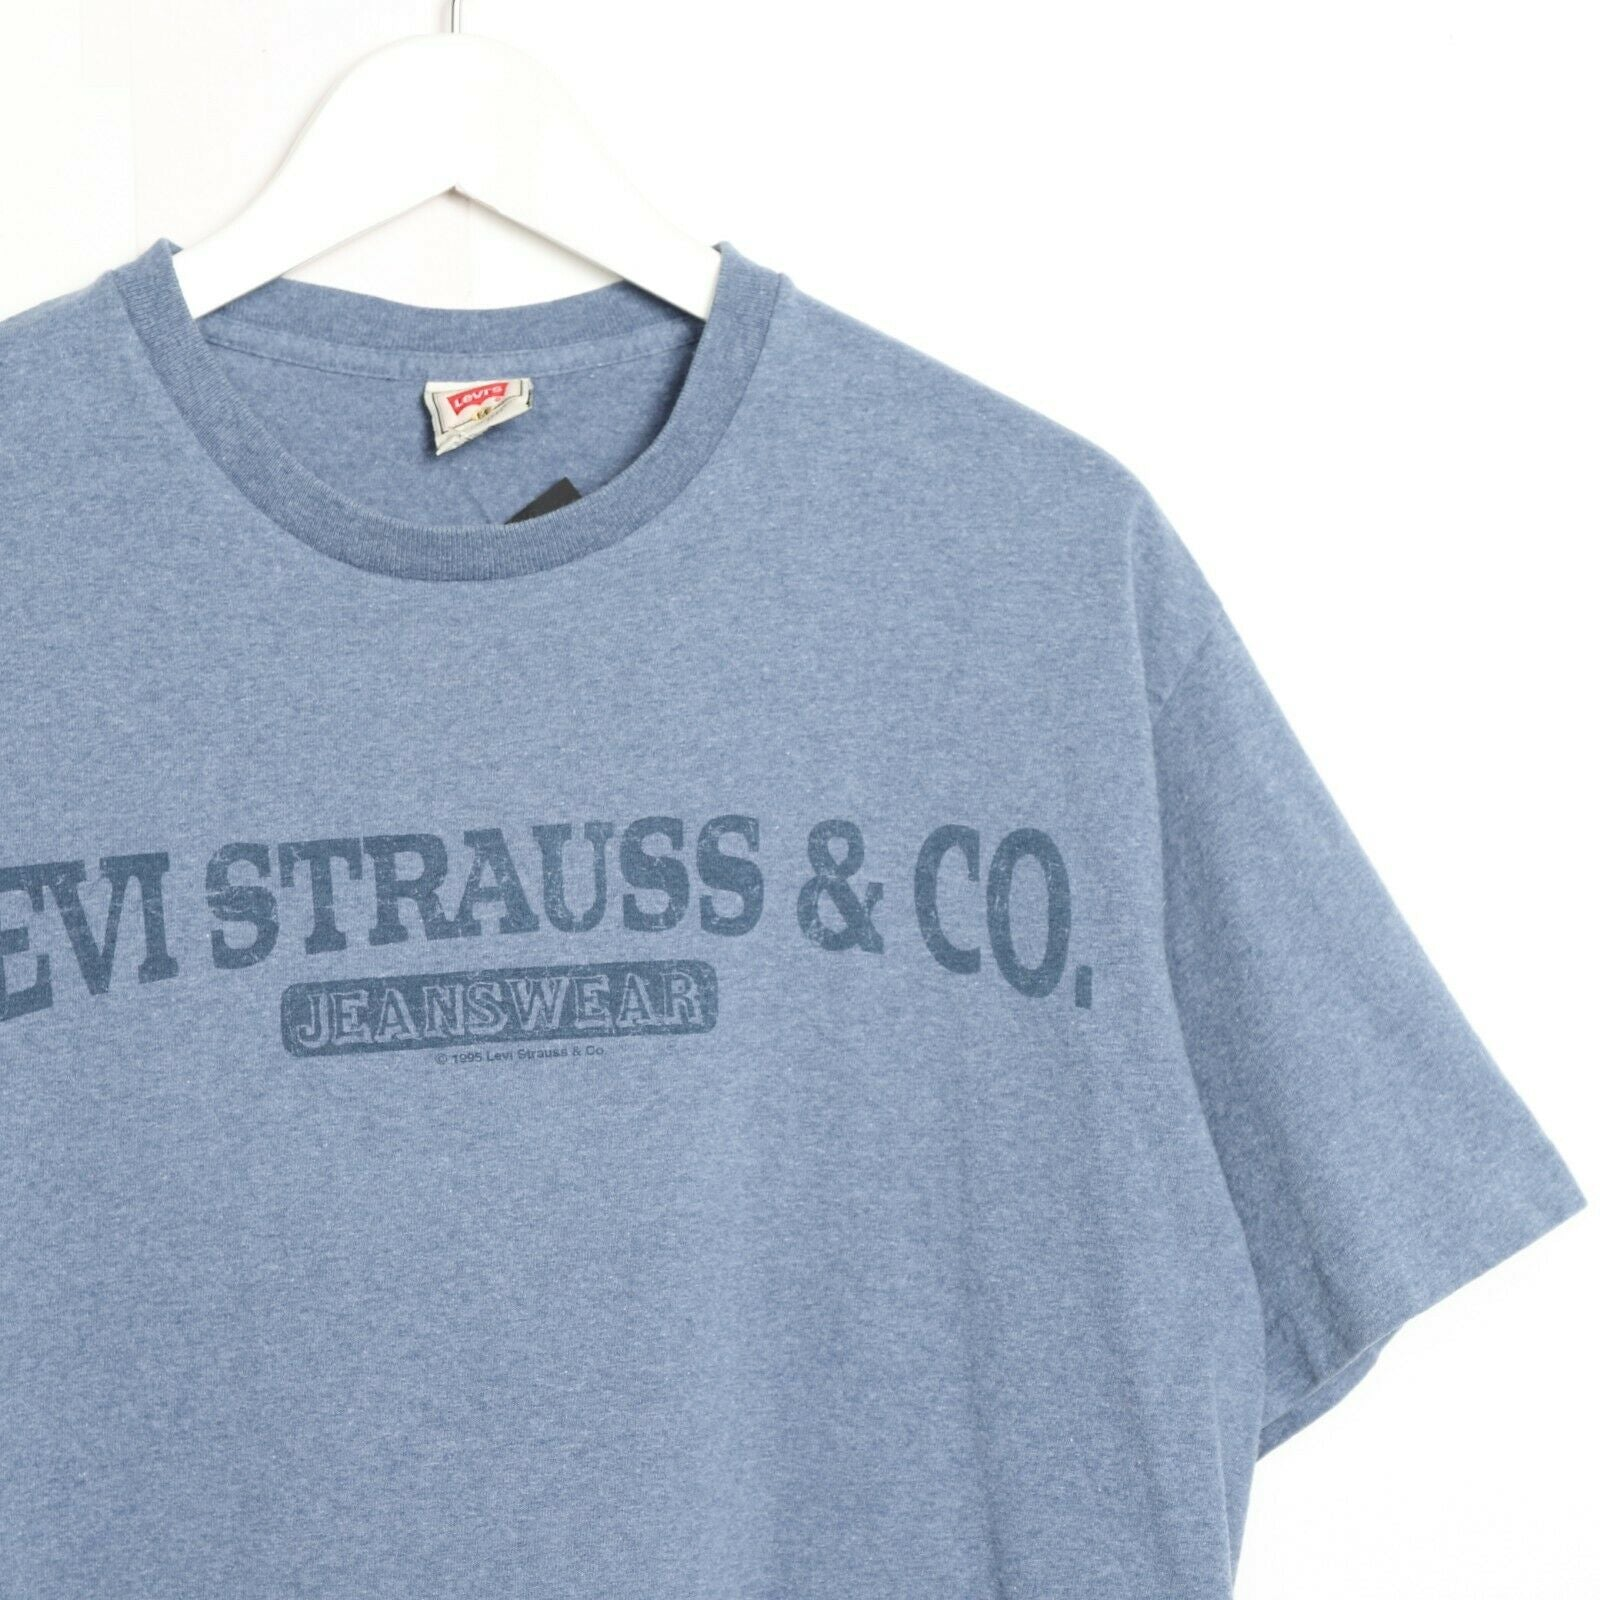 Vintage 90'S LEVI'S Central Spell Out Logo T Shirt Tee Blue Medium M